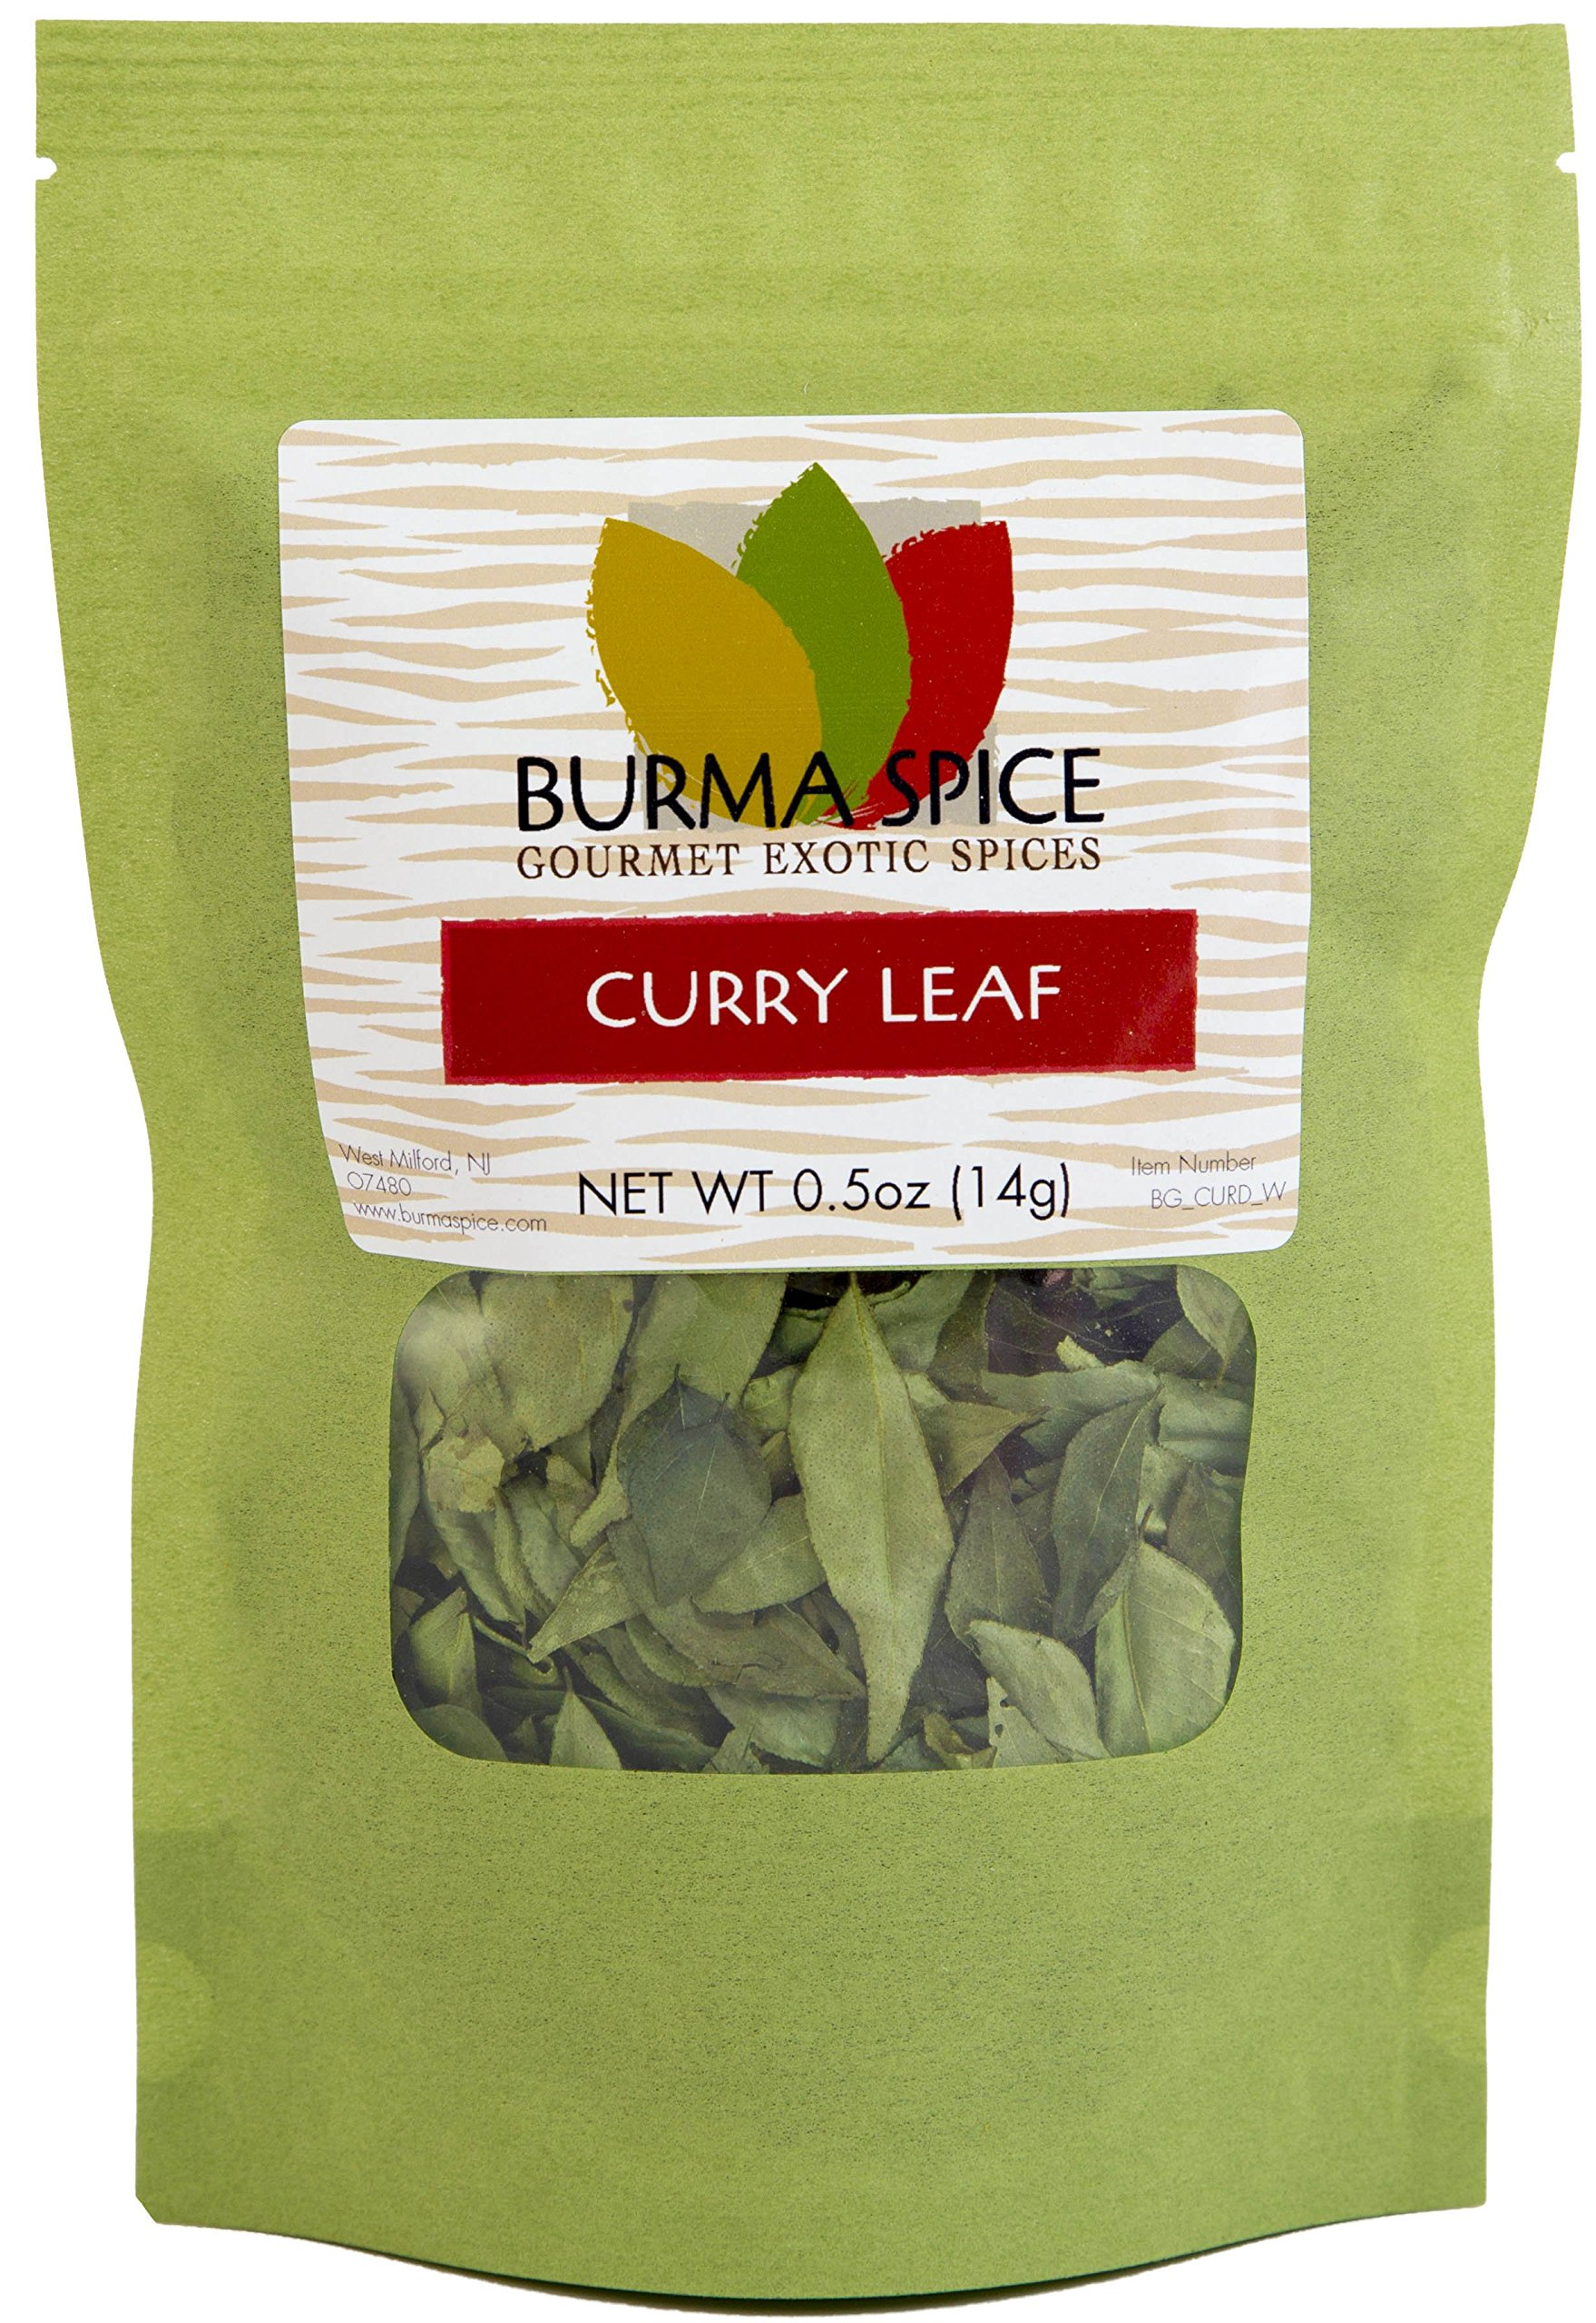 Dried Curry Leaves, Indian spice also used in Ayurvedic medicine